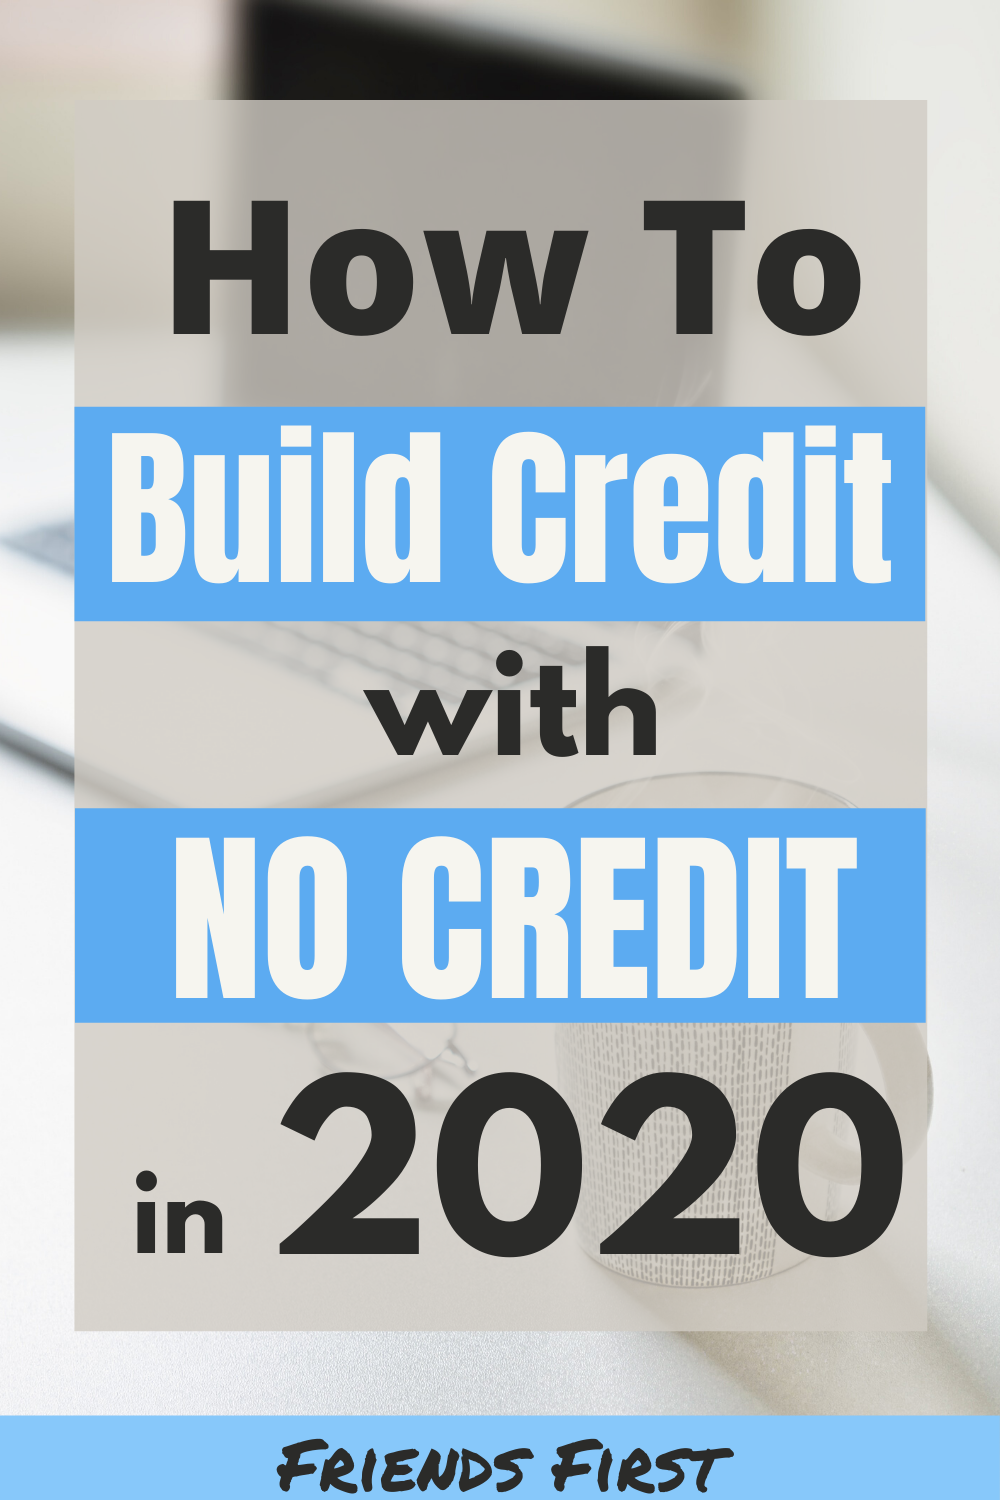 7f8de7ef0a3a871133102aeb220cb6a8 - How To Get A First Credit Card For No Credit